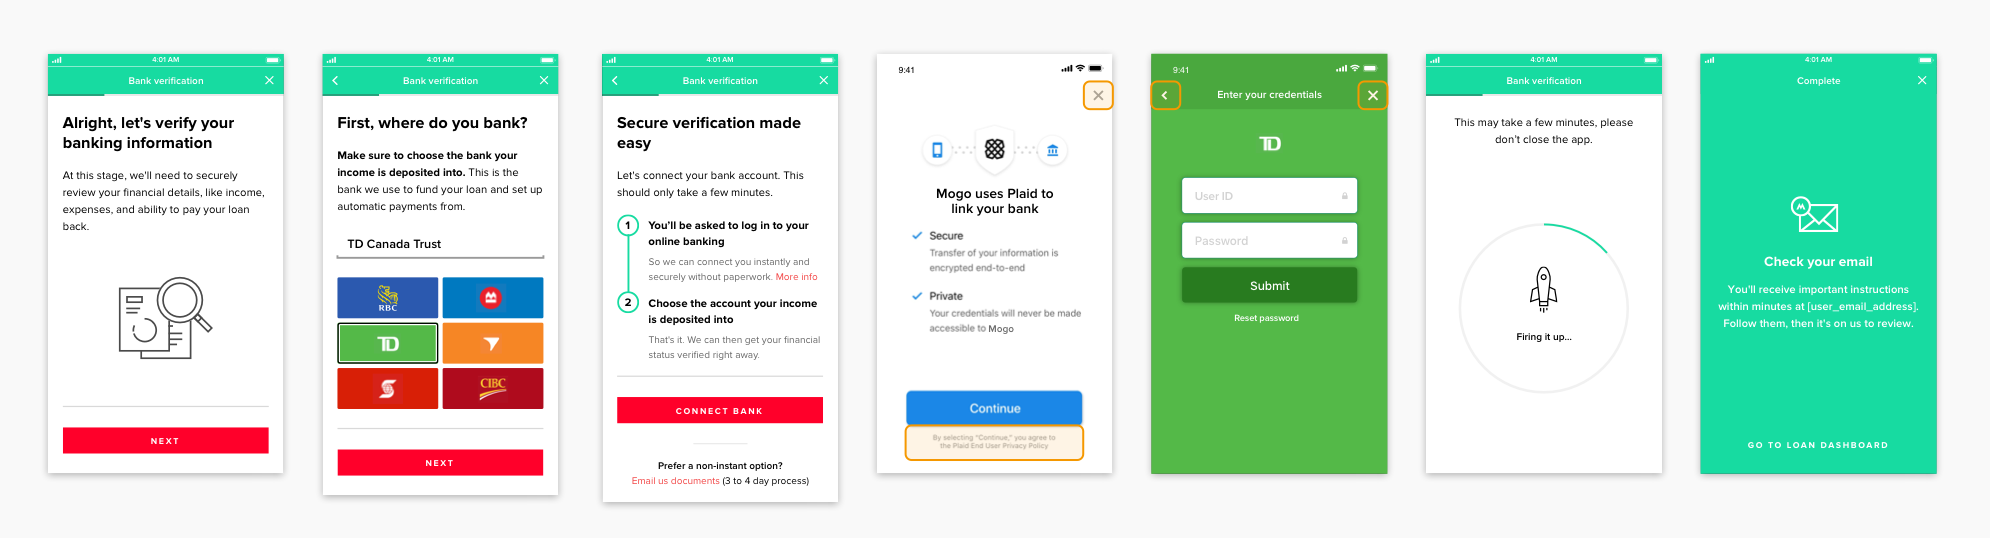 High-fidelity mockups for the Bank verification flow.